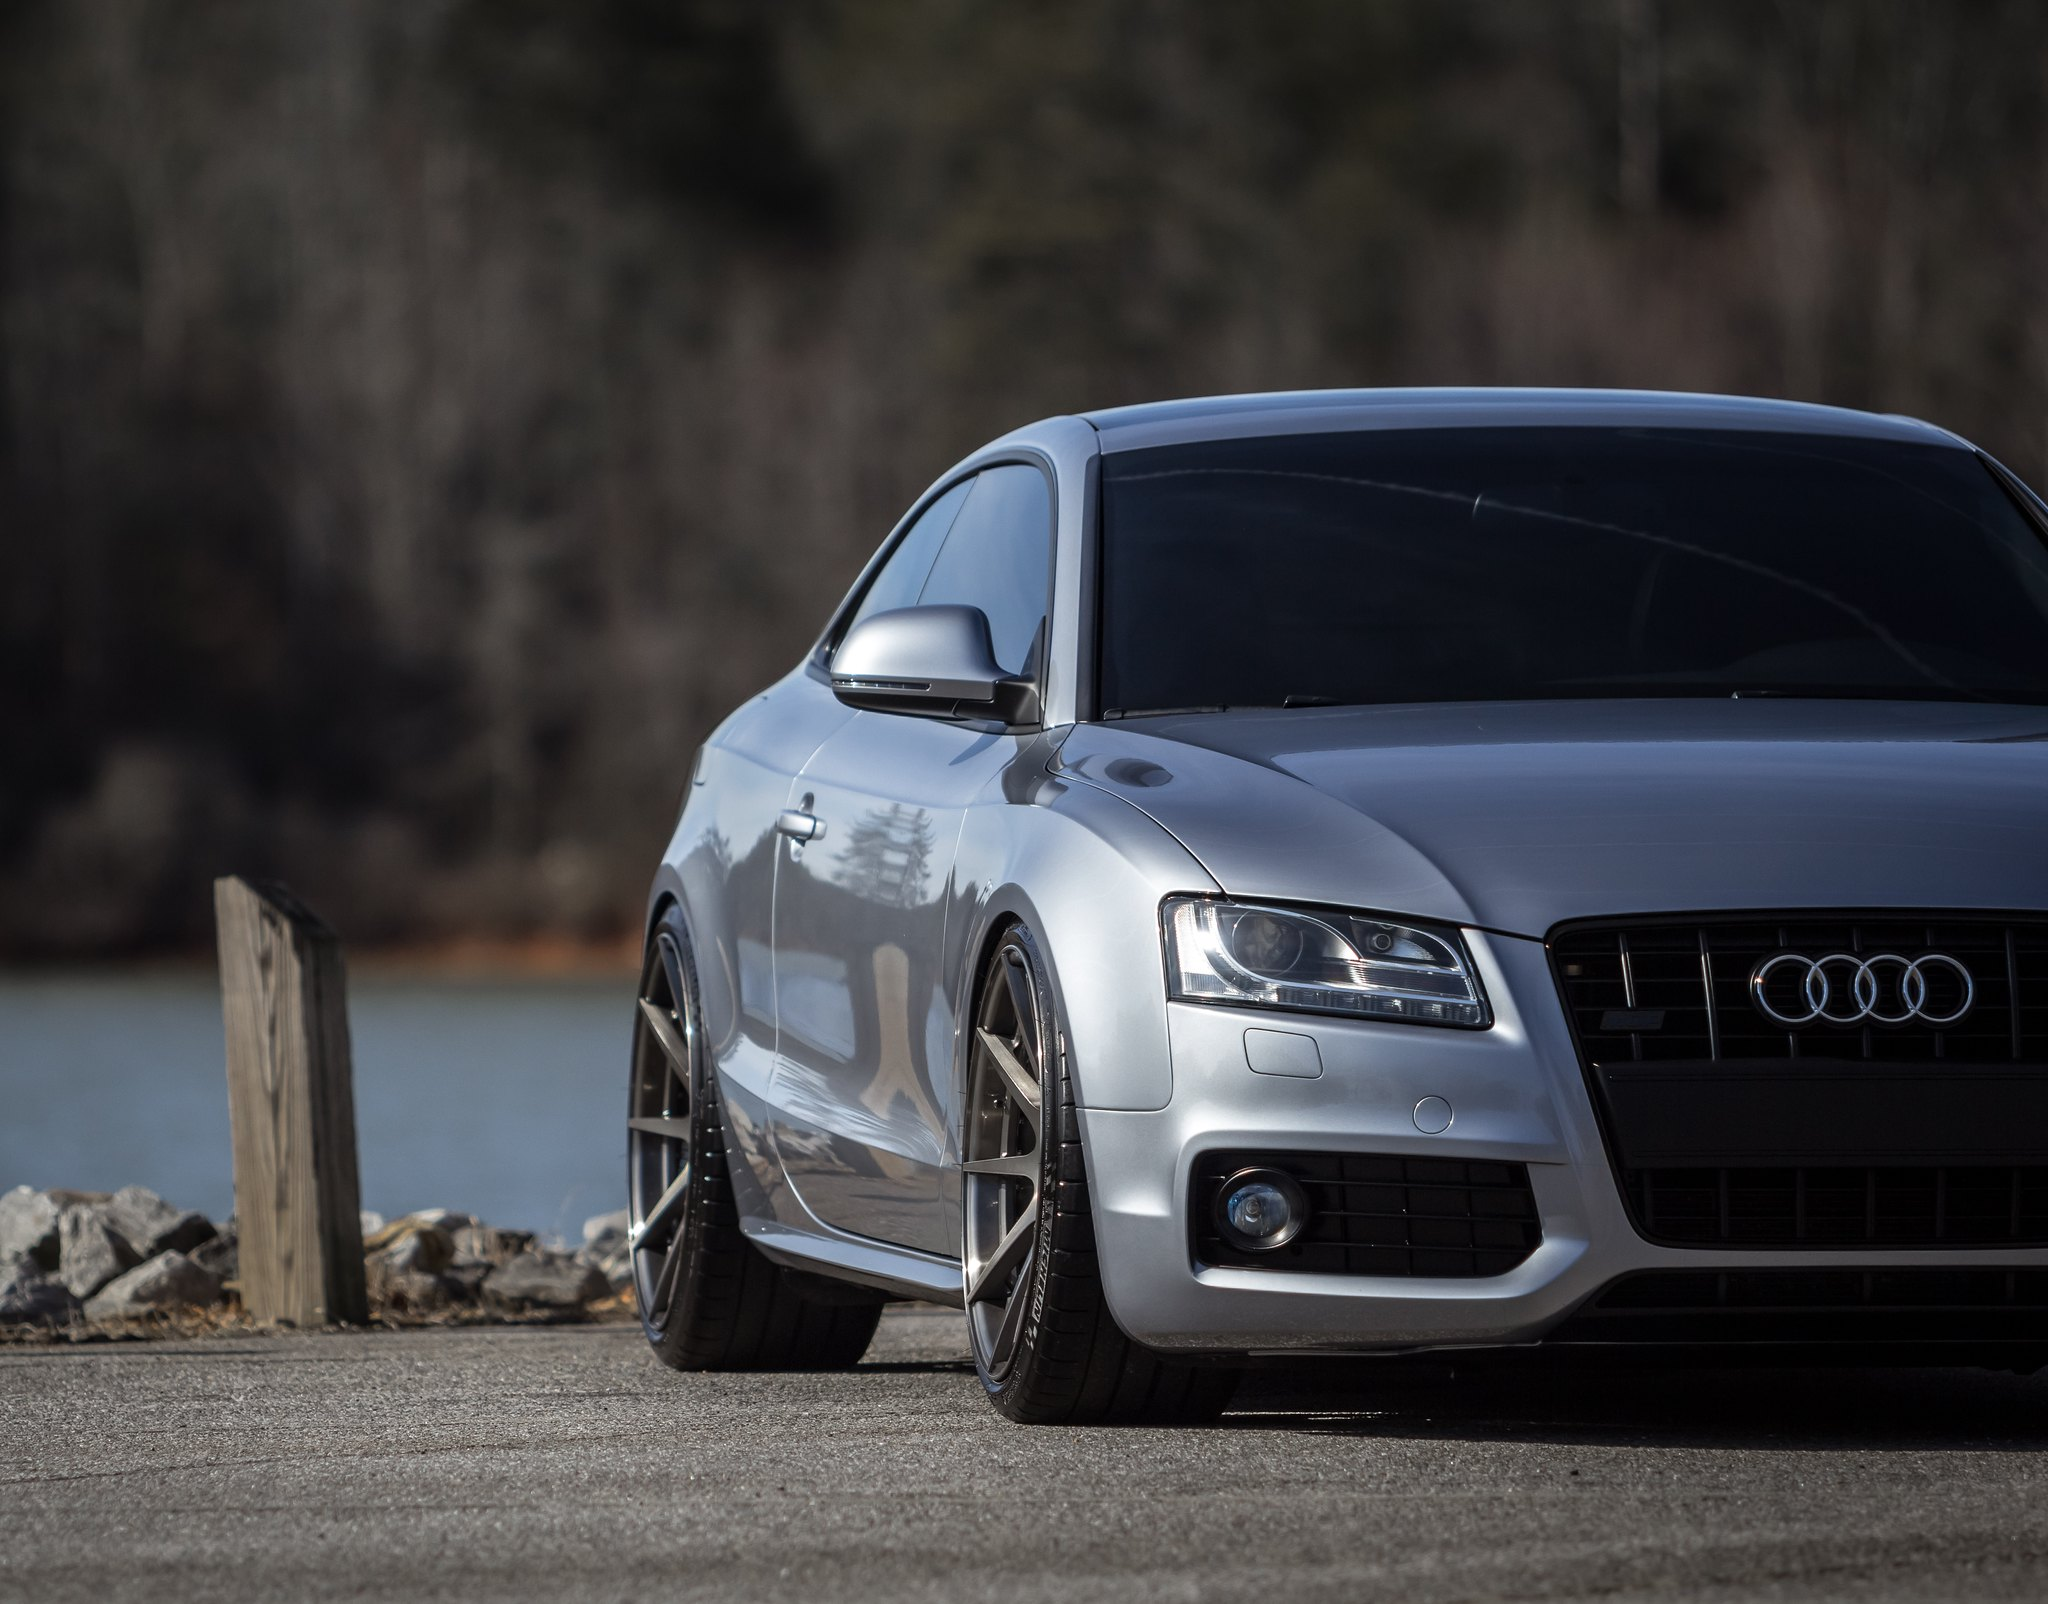 official b8 a5 s5 rs5 aftermarket wheel gallery   page 46